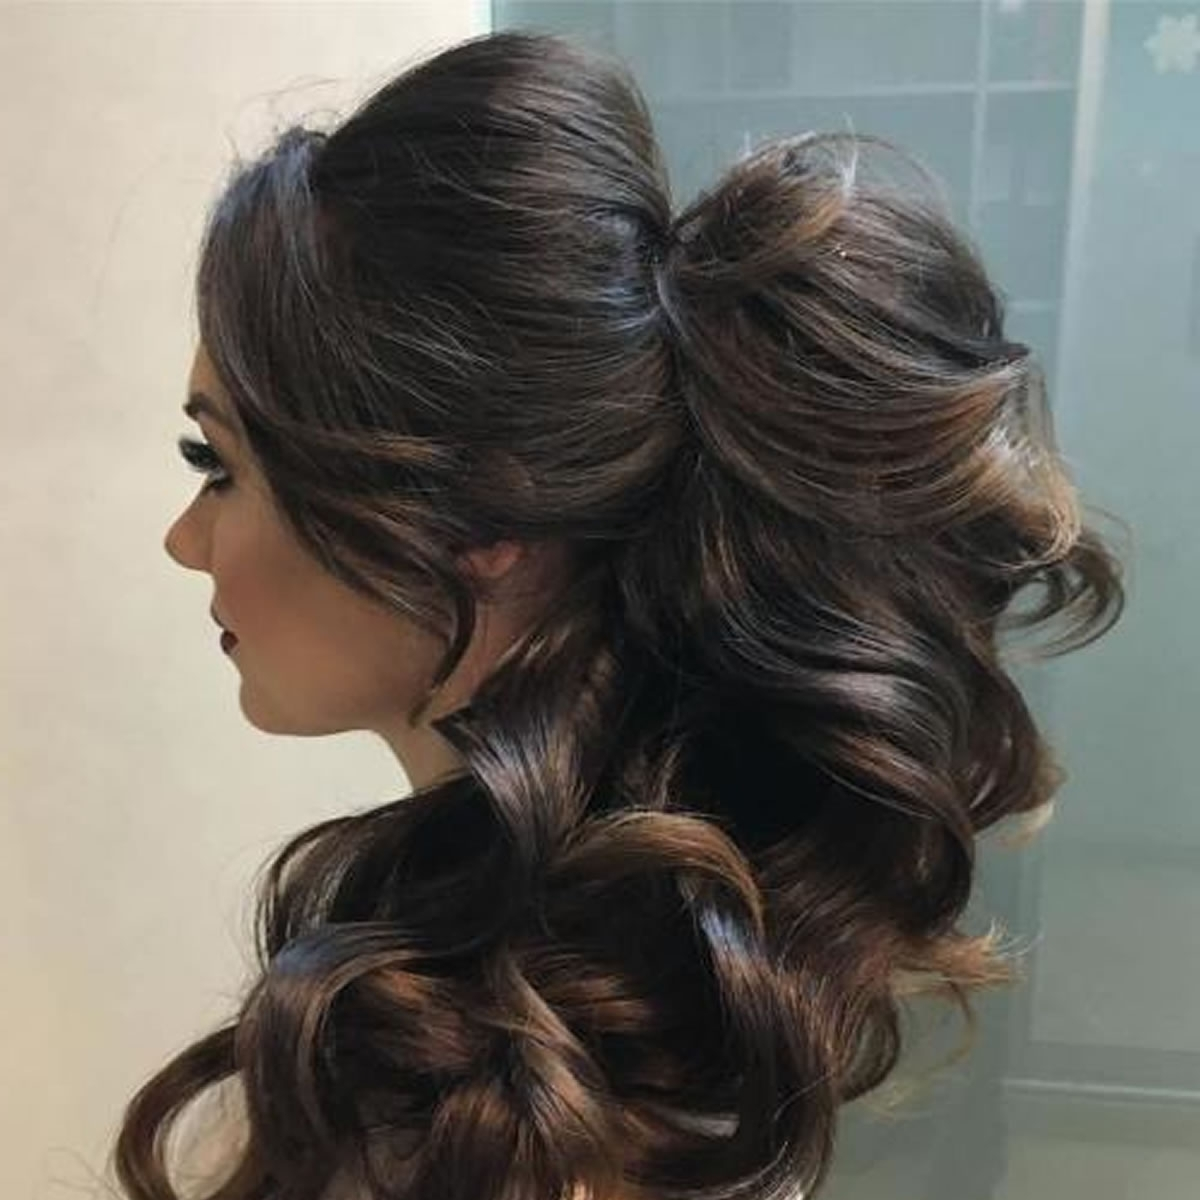 Well Liked Bouffant Ponytail Hairstyles Throughout The 20 Most Attractive Ponytail Hairstyles For Women – Hairstyles (View 19 of 20)